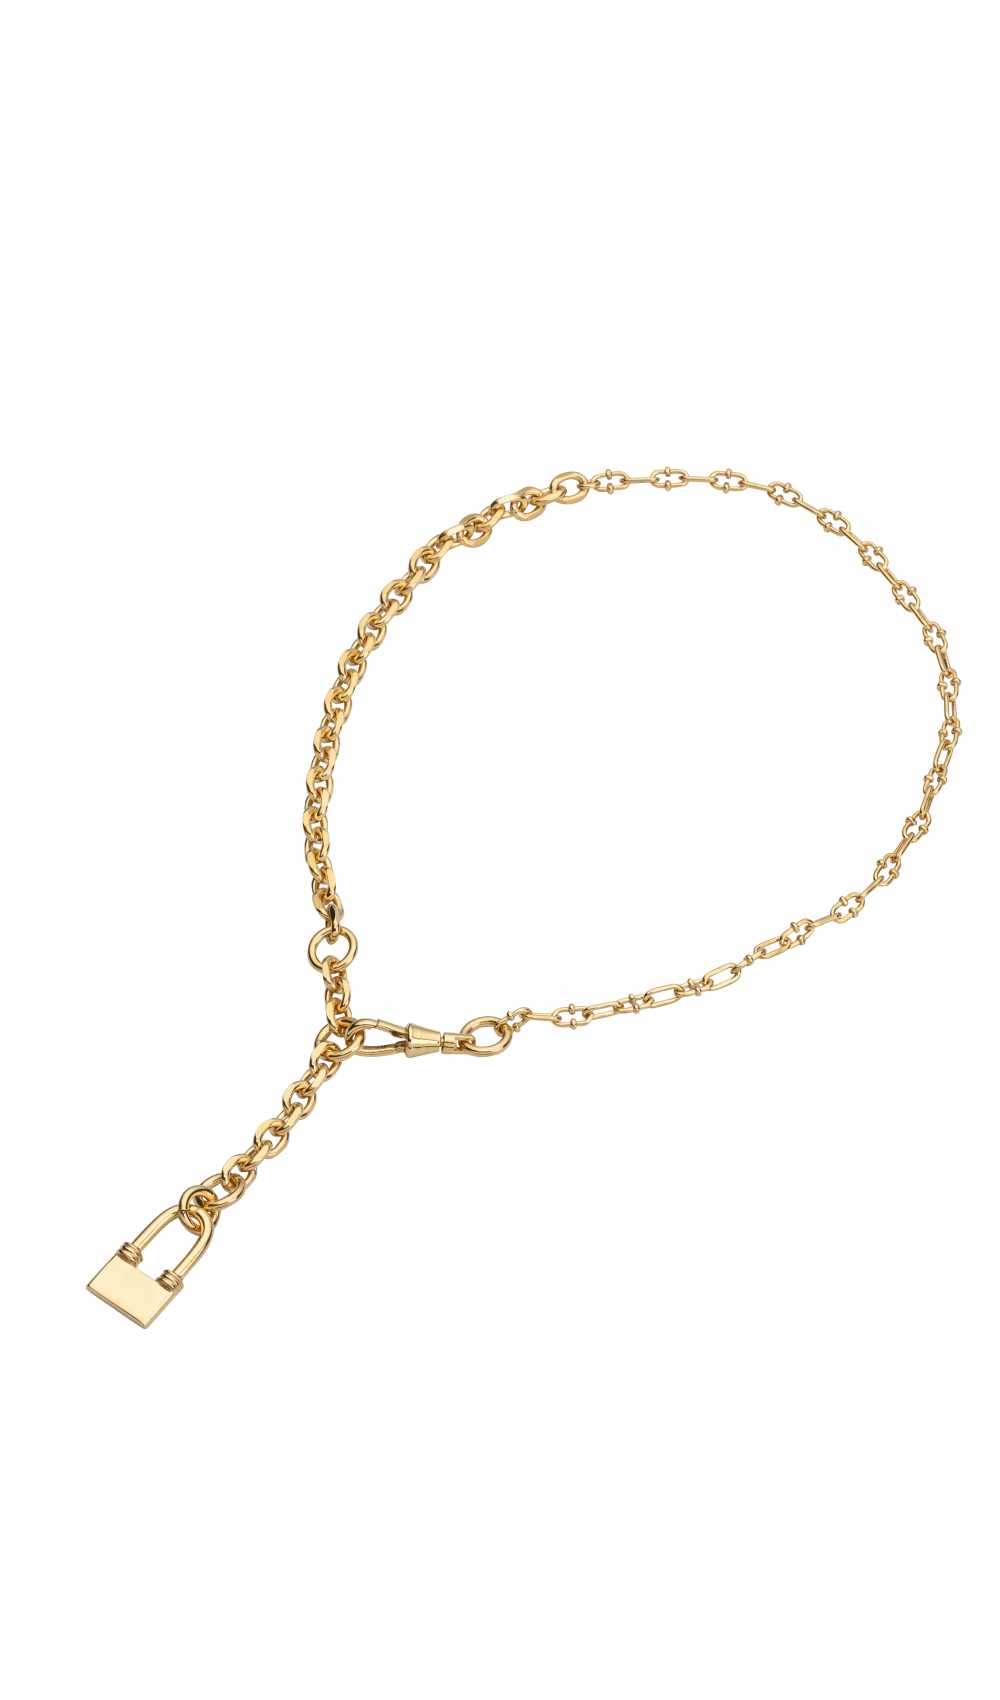 ingent necklace in gold von Sabrina dehoff